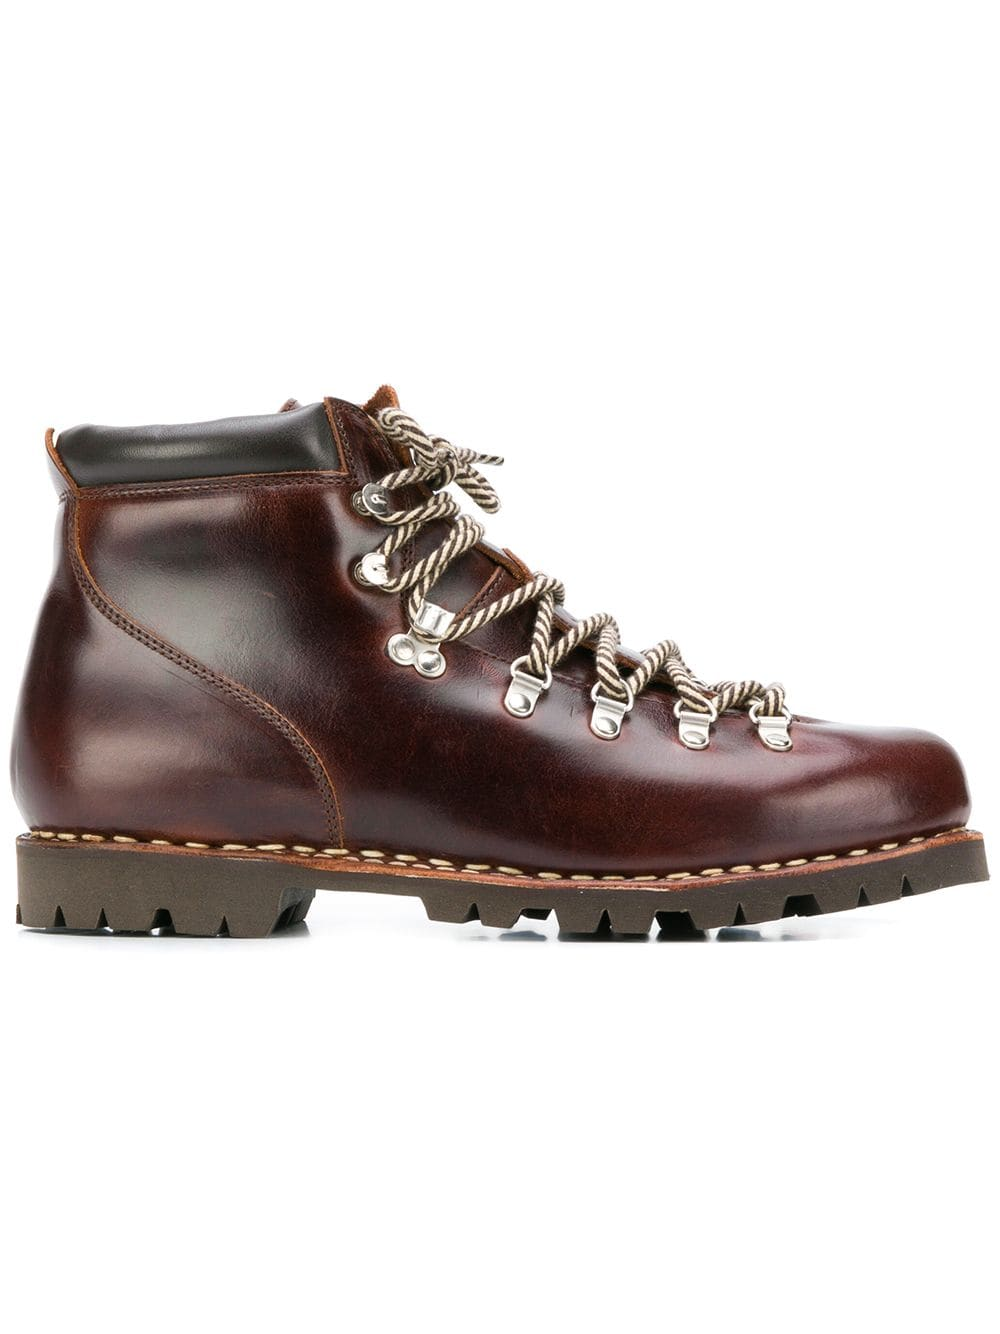 55dfeb599c8 Paraboot lace-up boots - Brown in 2019   Products   Boots, Lace up ...